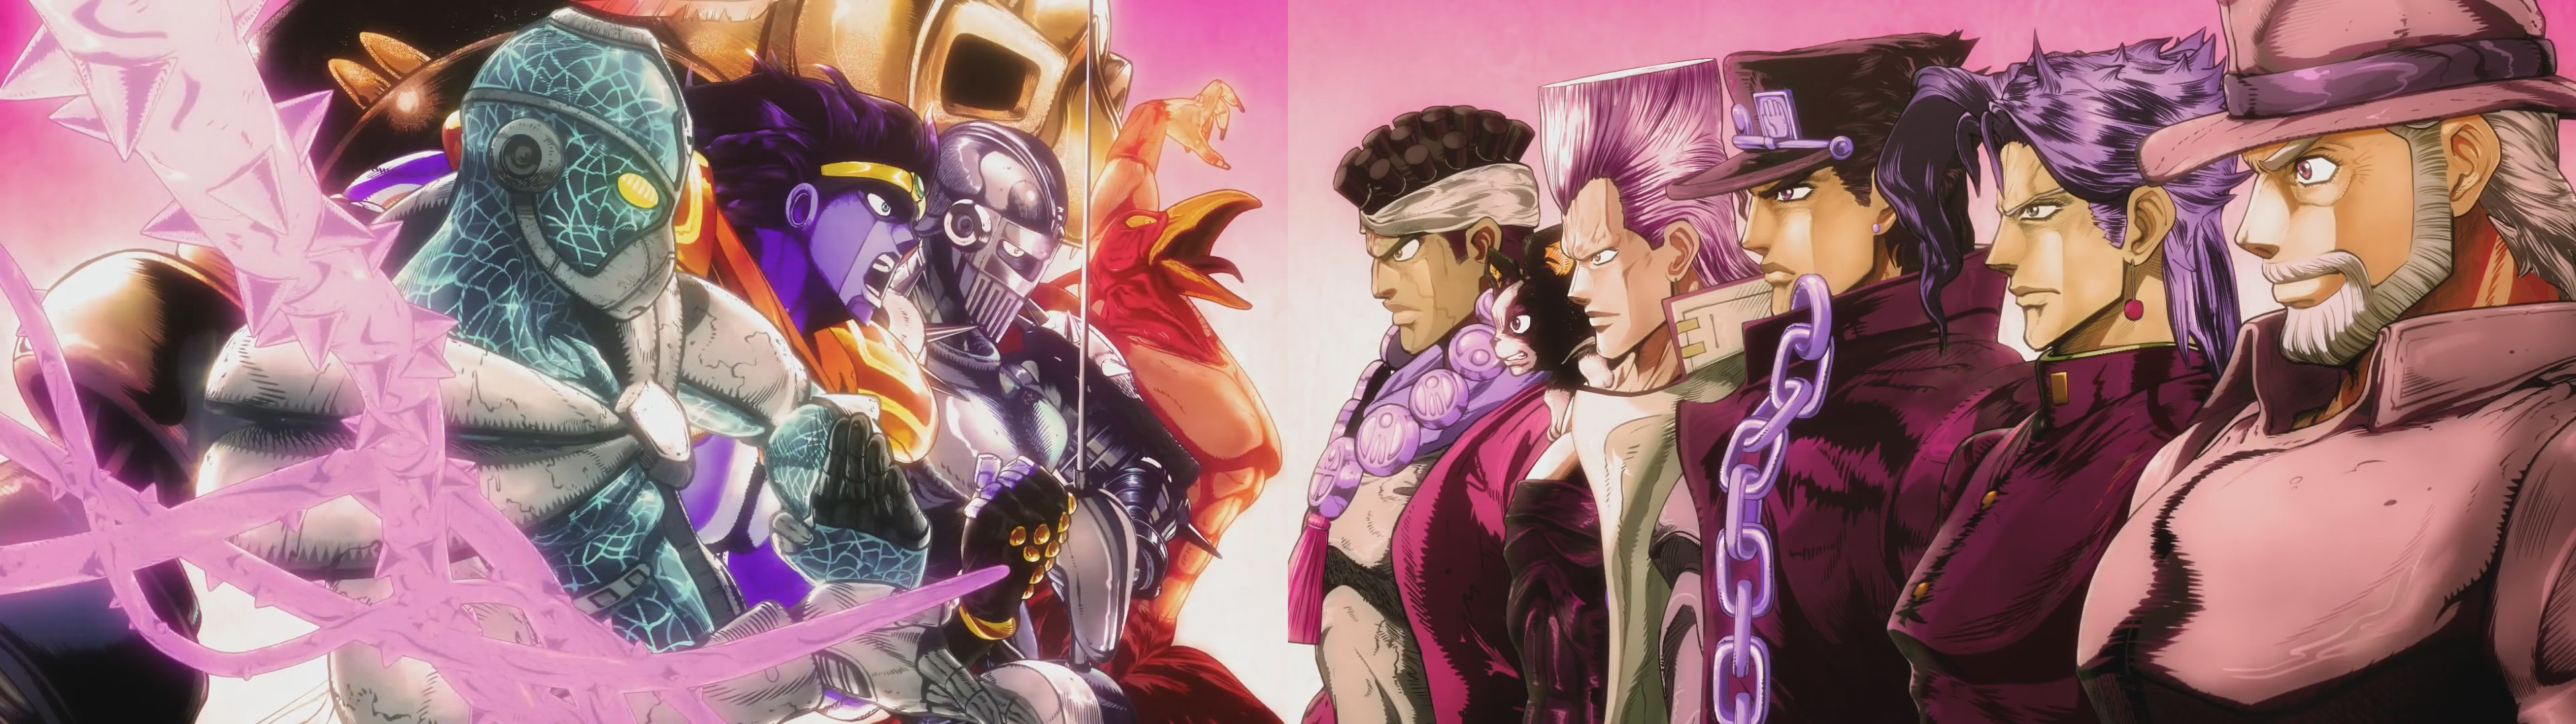 Jojo S Bizarre Adventure Battle Tendency Wallpaper Download